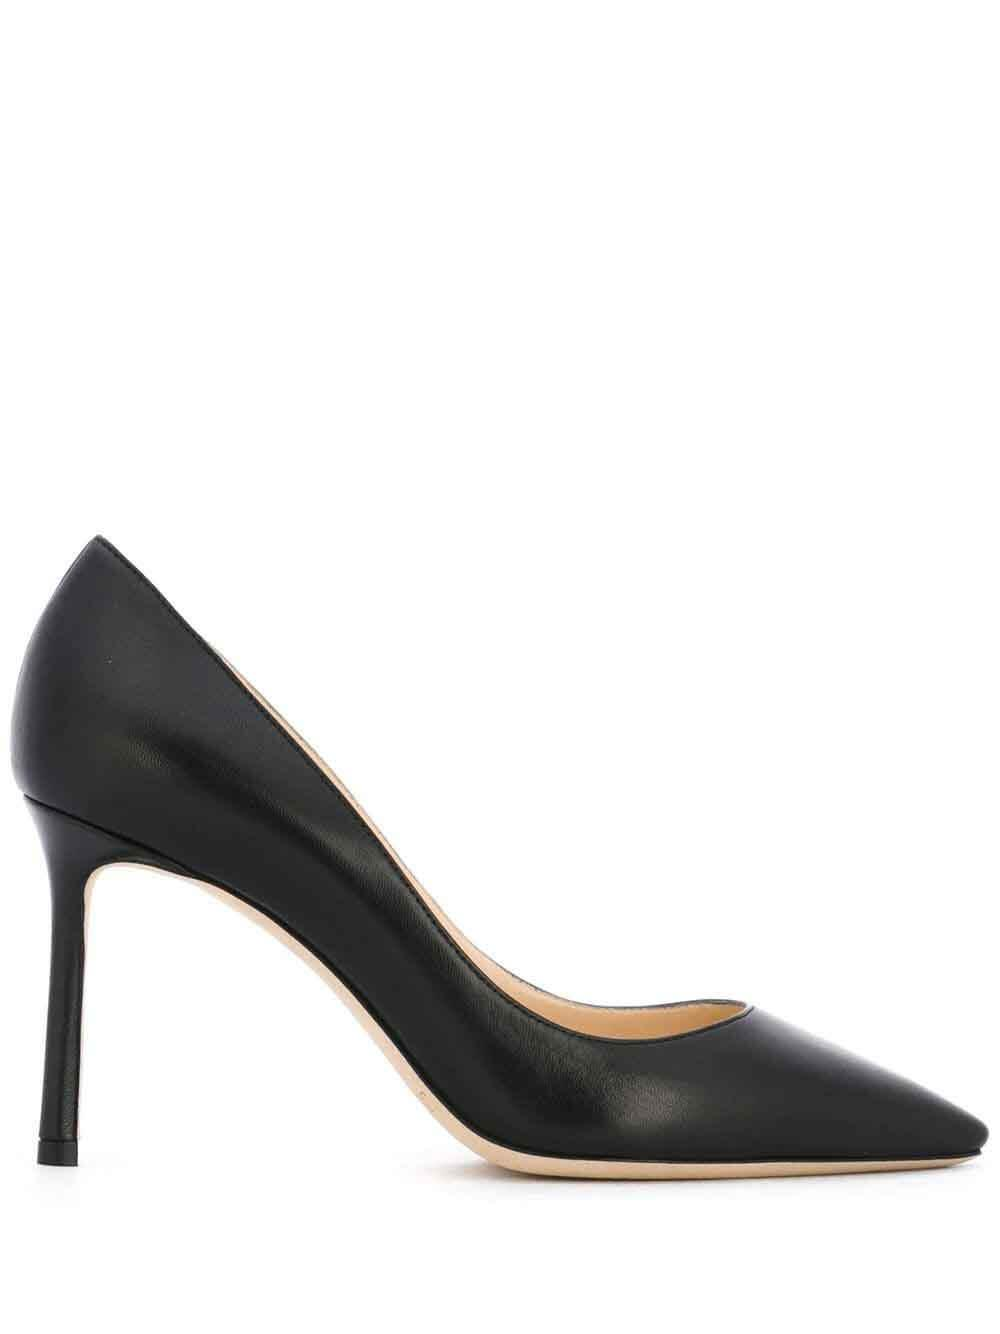 Black Leather Pointed Toe Pump